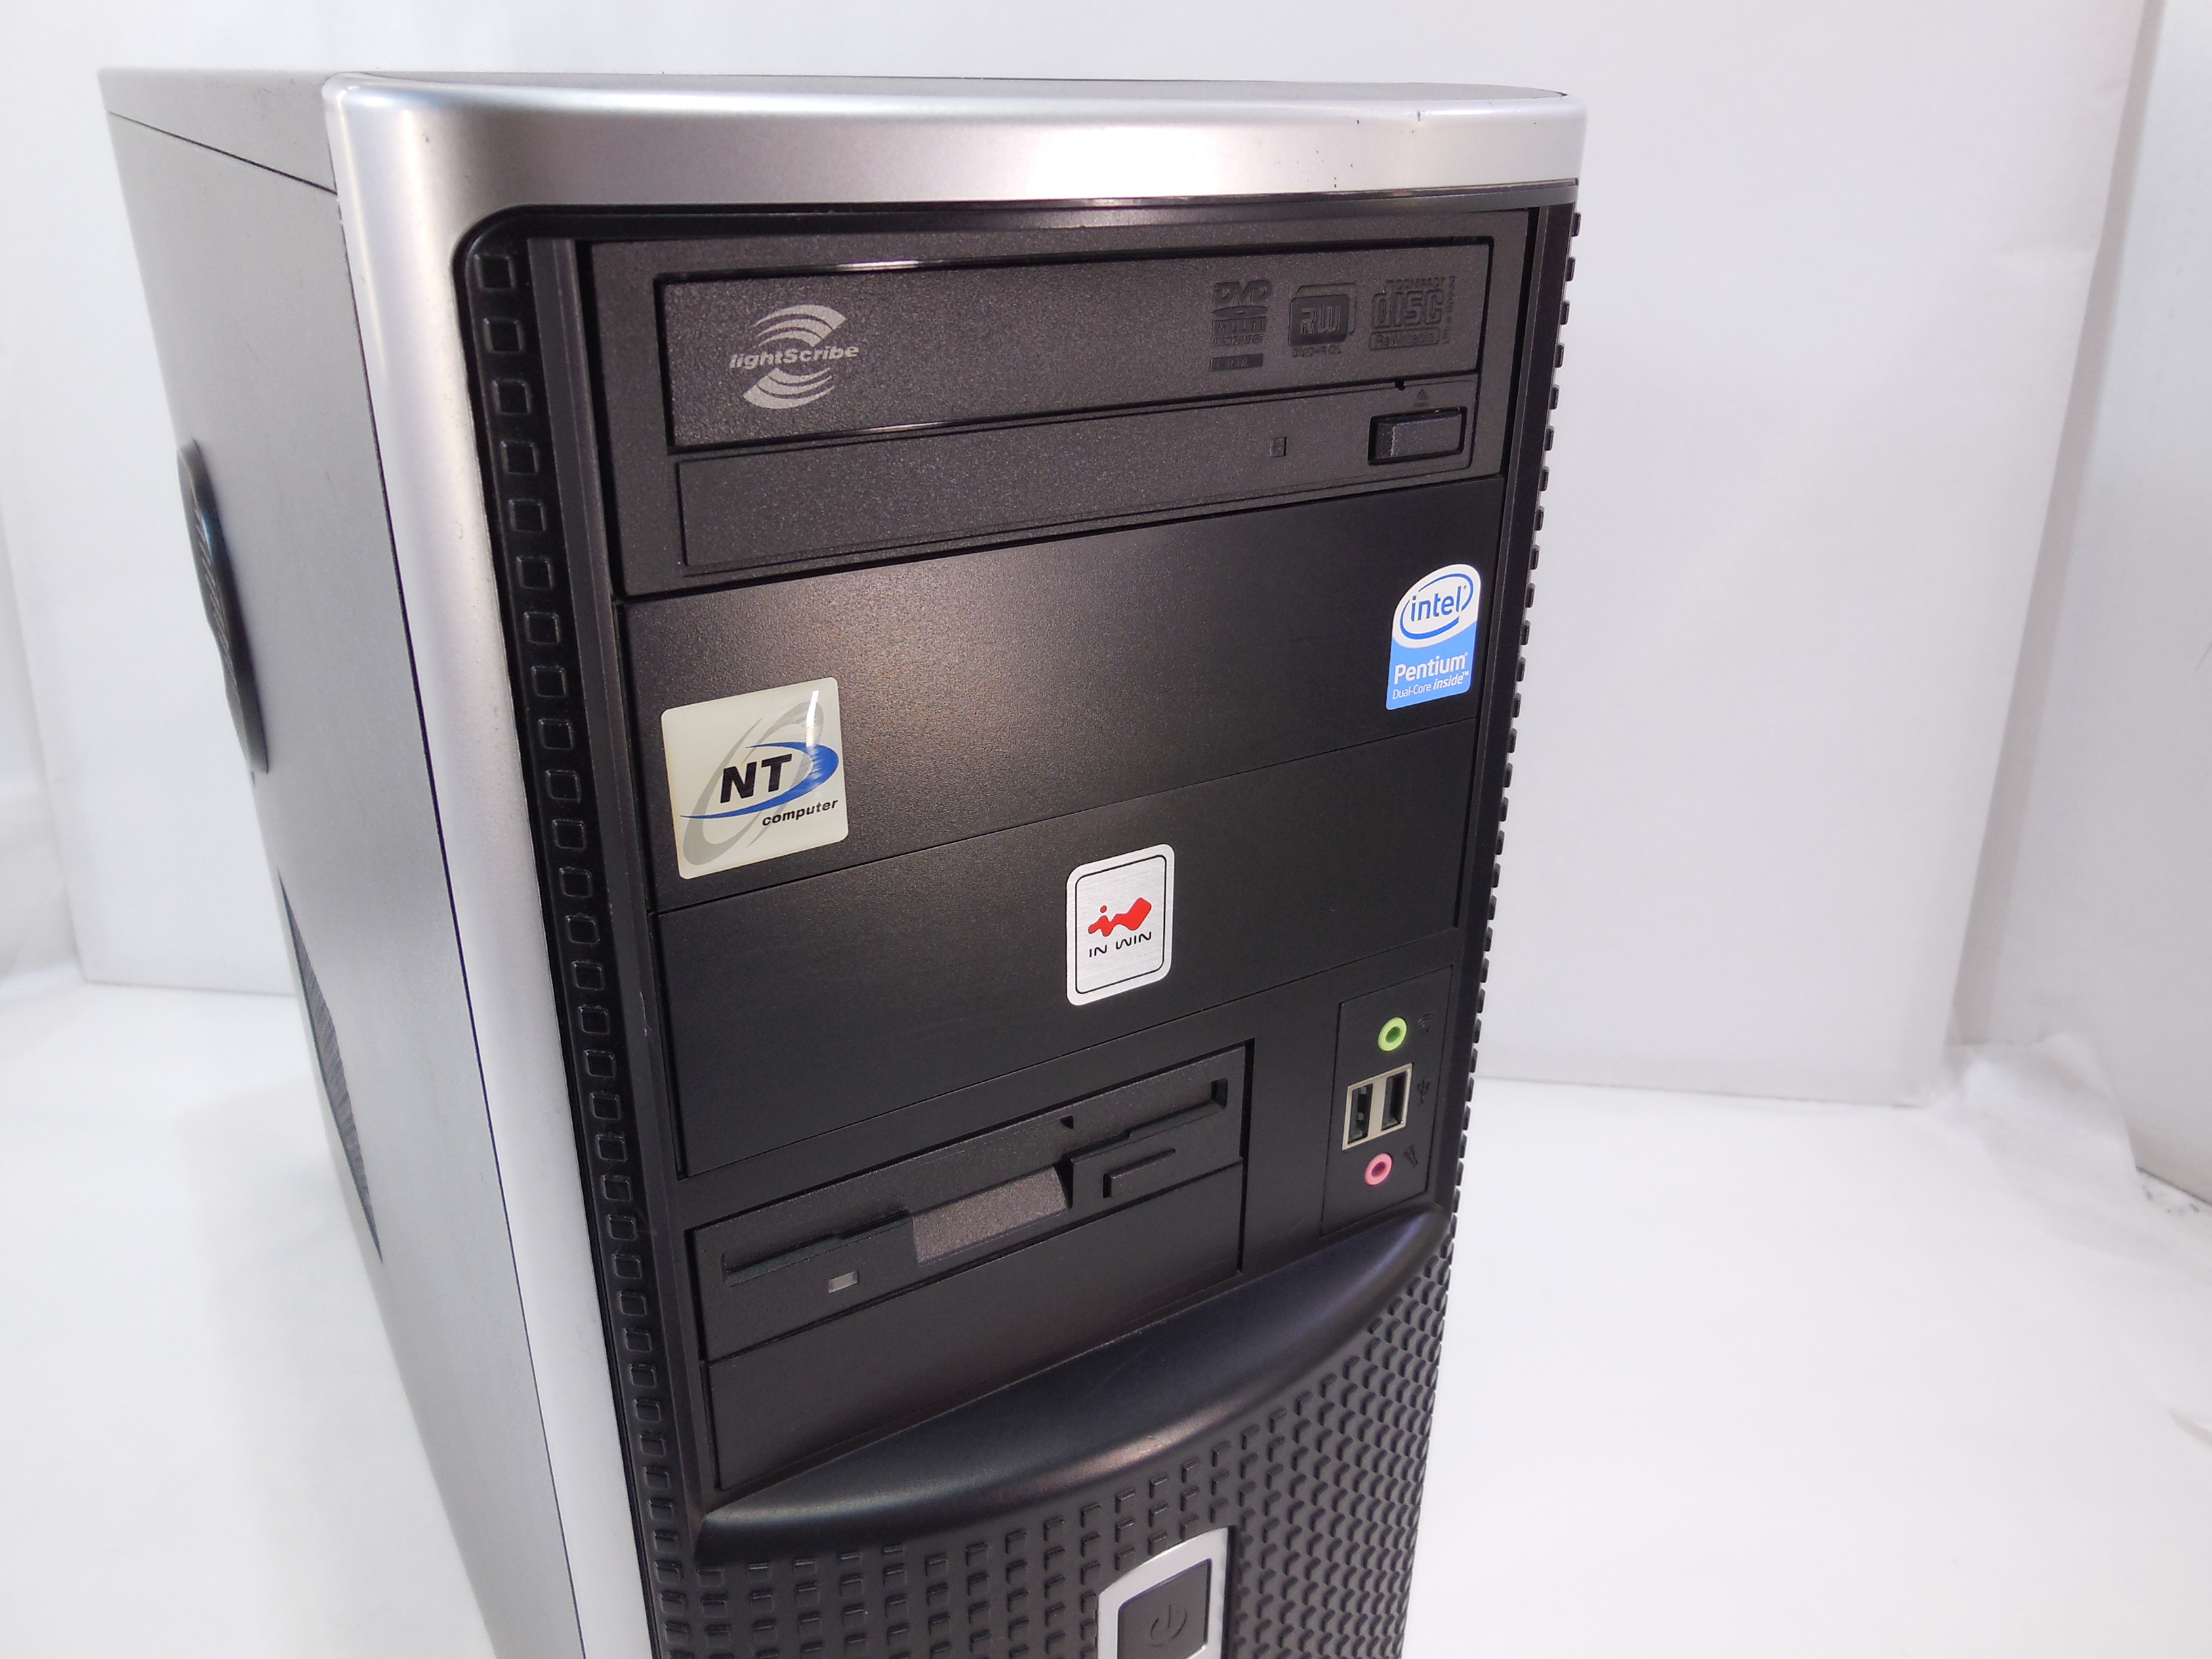 Комп. Intel Pent. Dual-Core E5400 (2.70GHz) - Pic n 283069